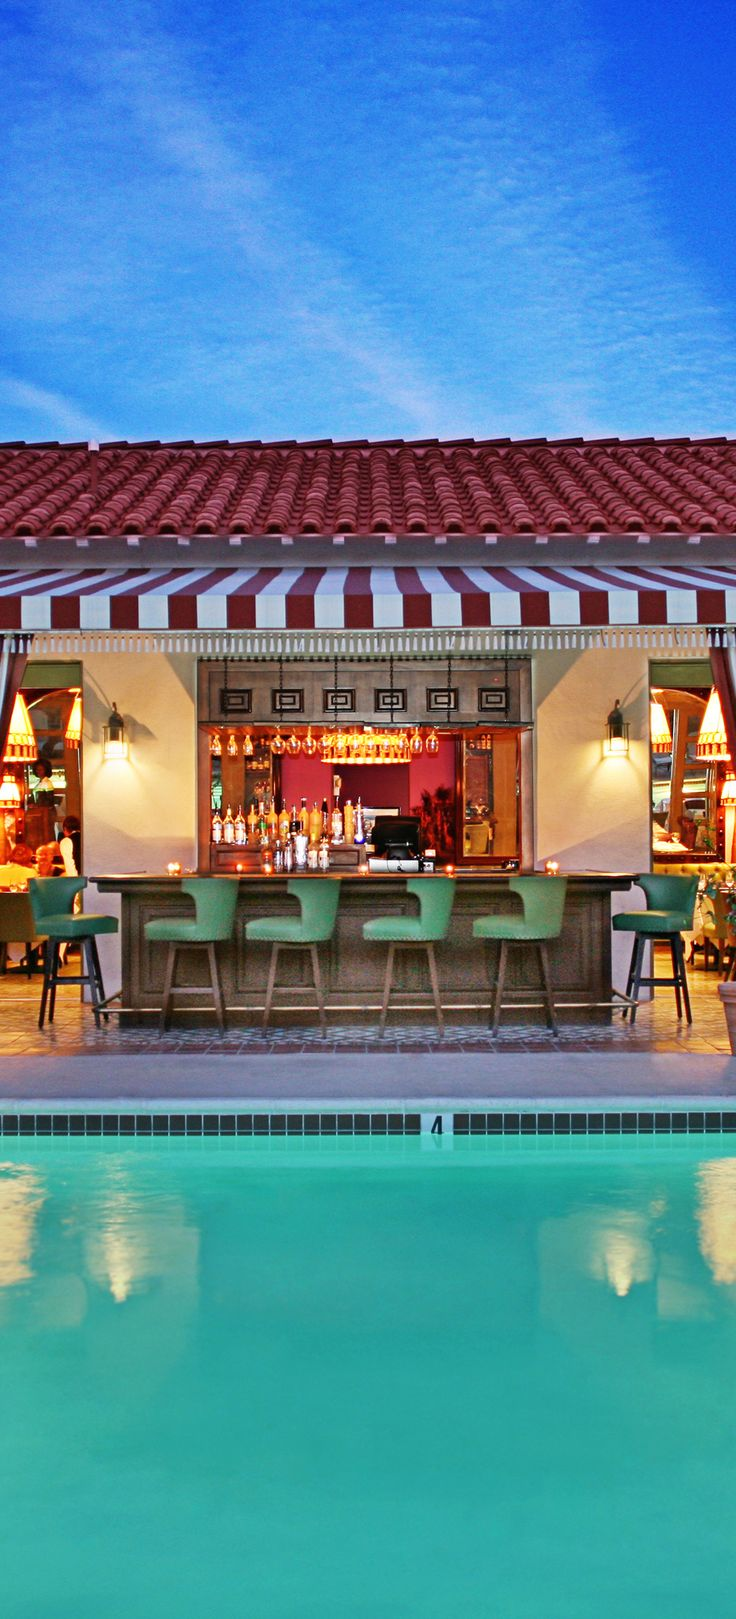 88 best Palm Springs images on Pinterest | Palm springs california ...